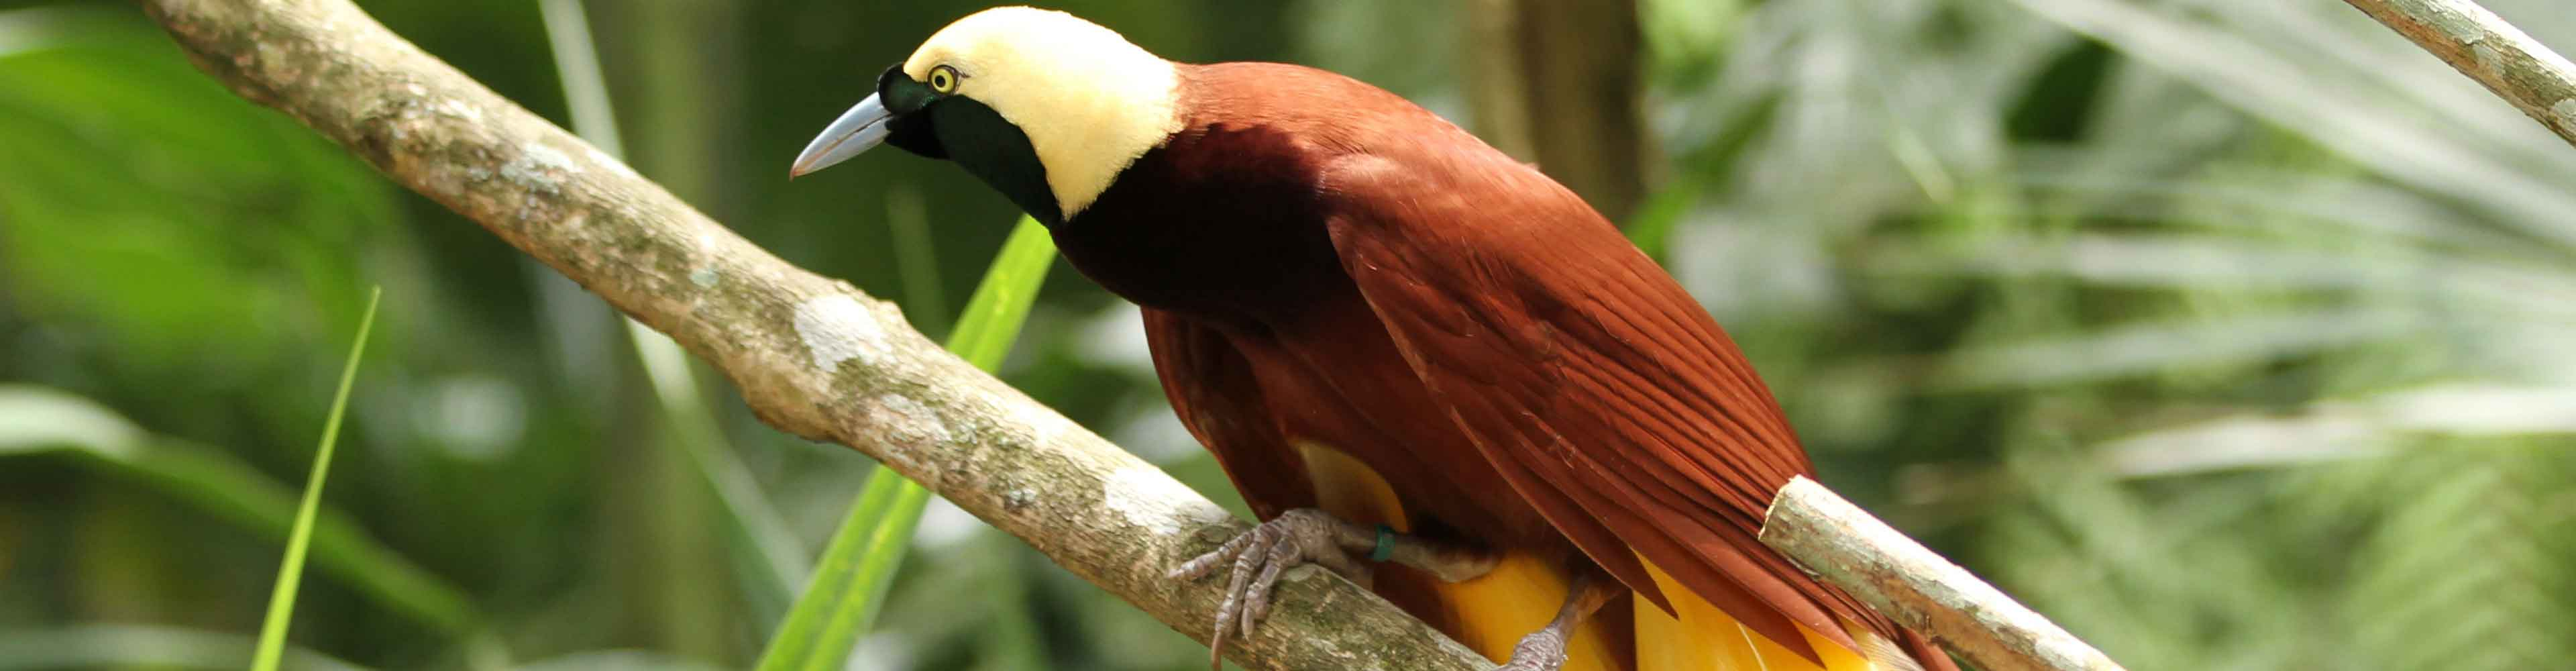 Birds of Paradise, Papua New Guinea - Limited Edition